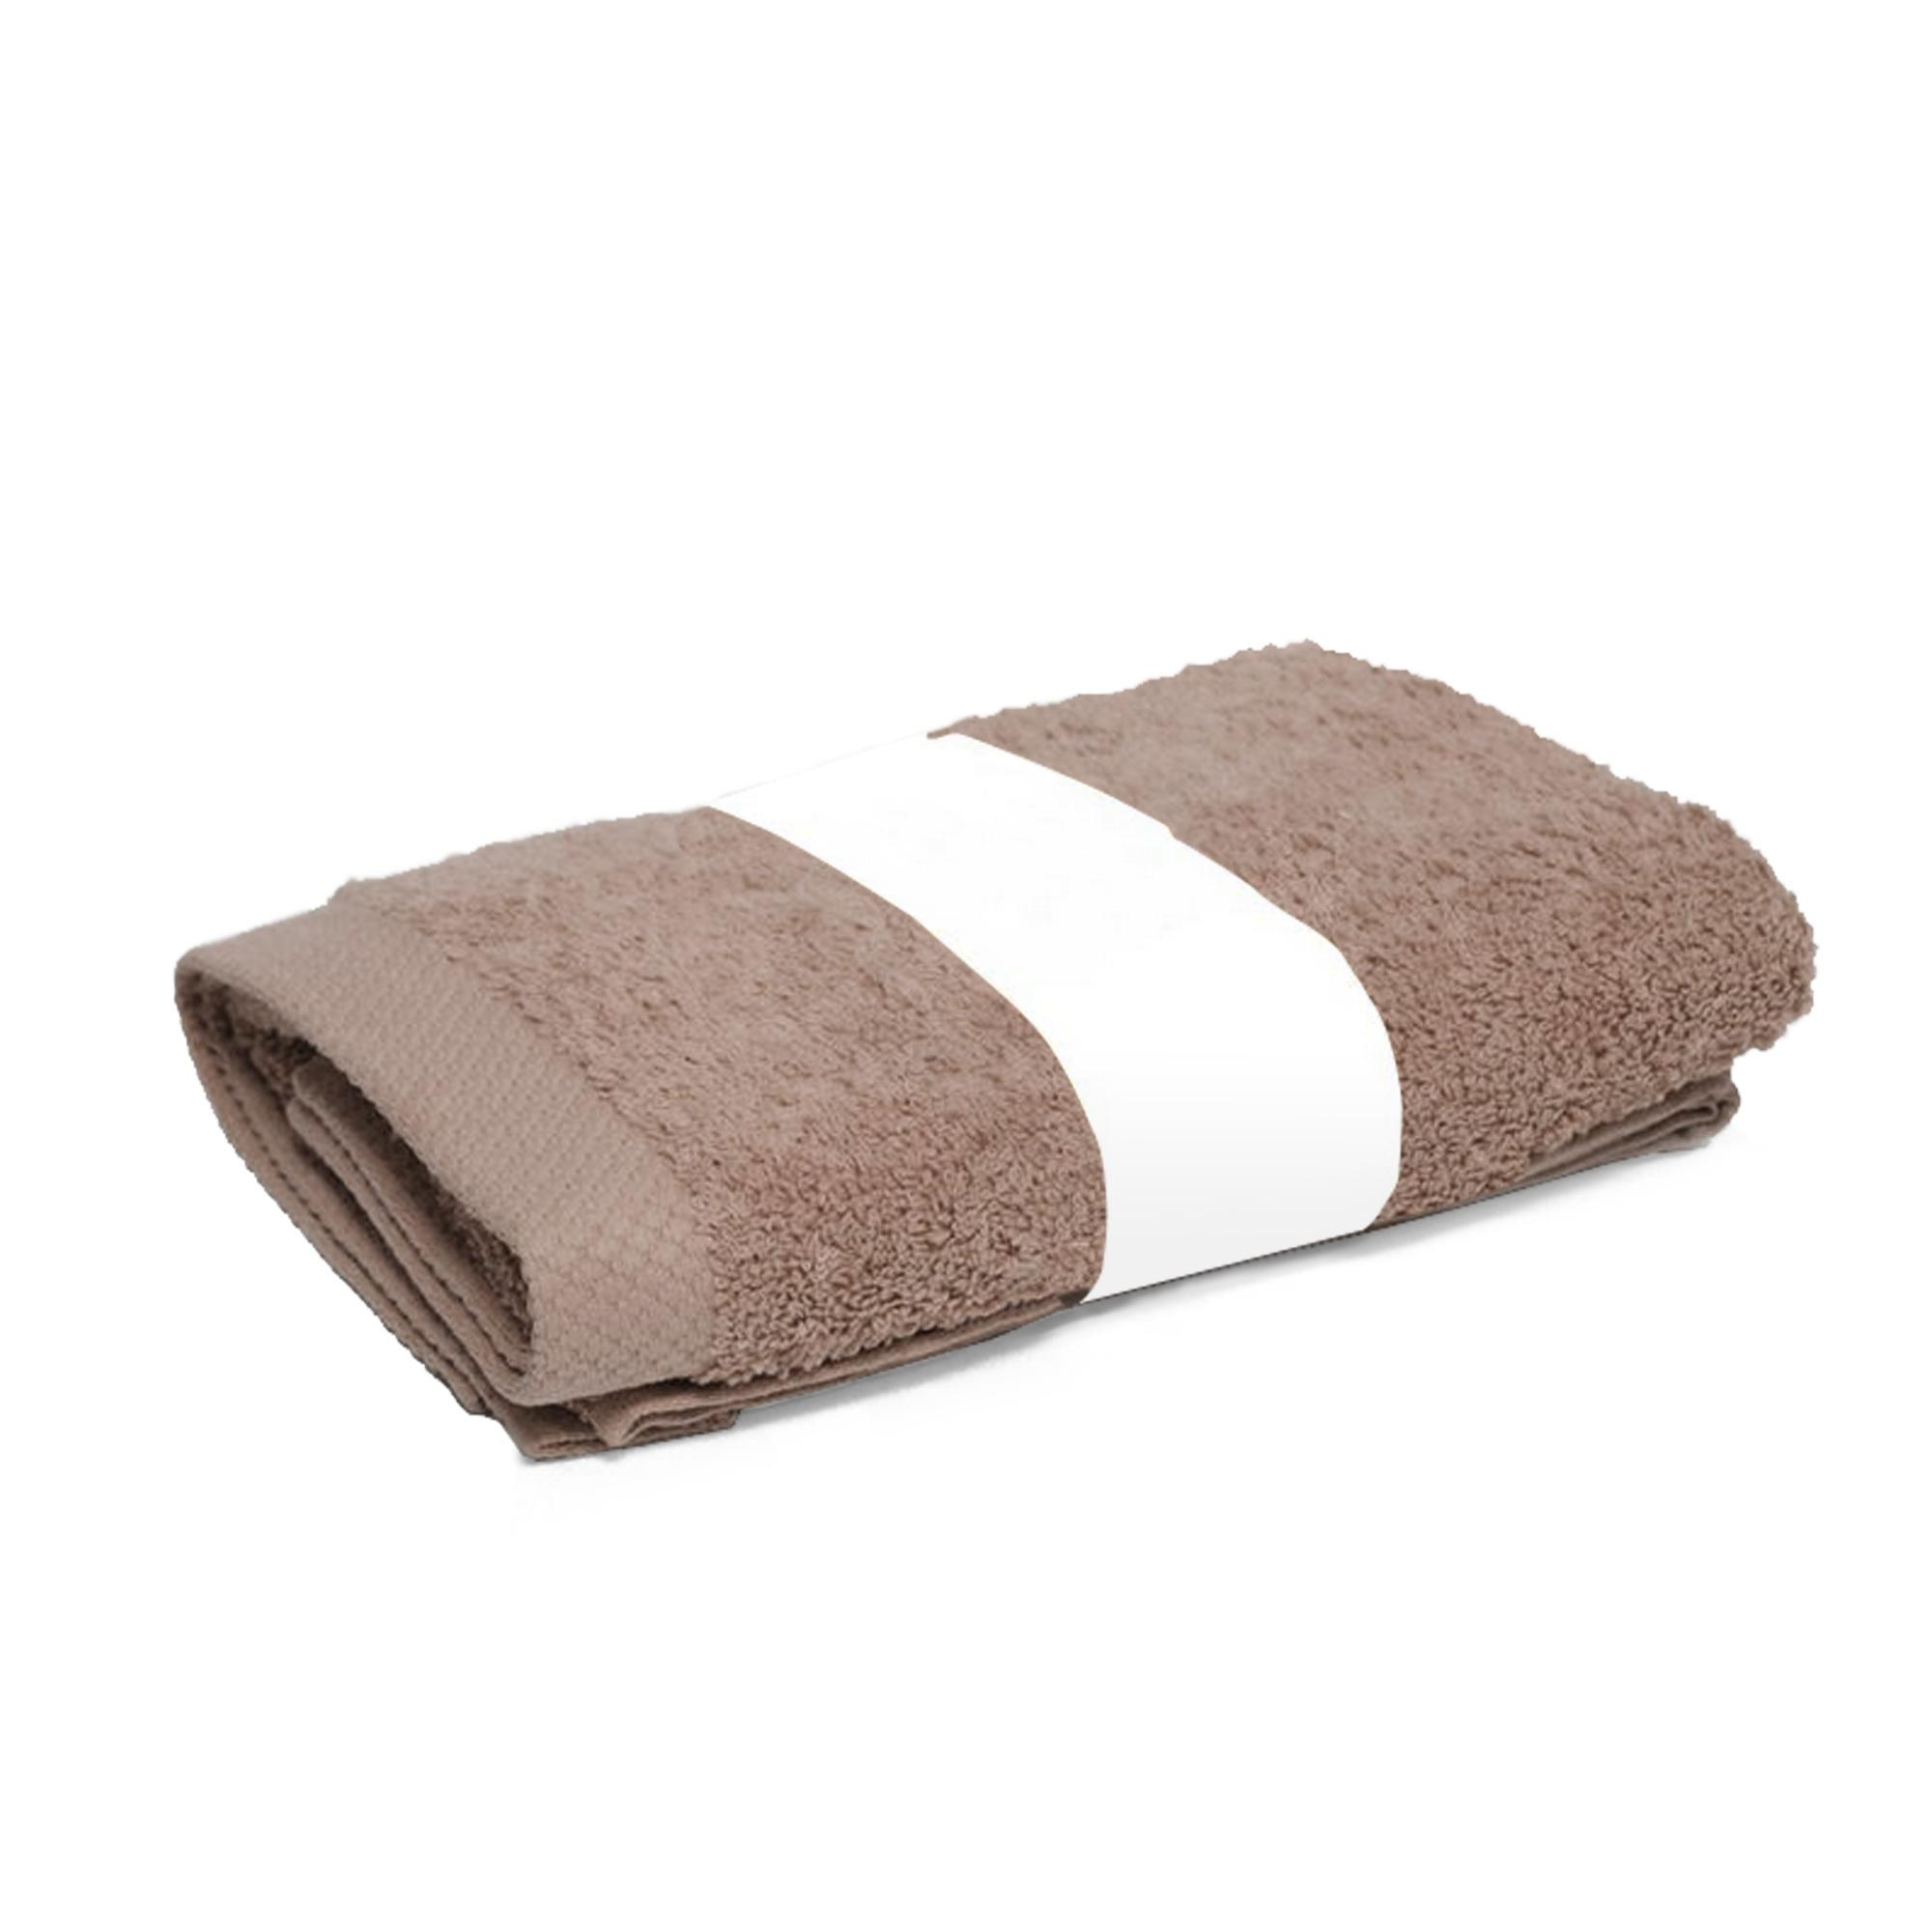 serviette de toilette 50x100 pure taupe 550g m2 eur 6 96 picclick fr. Black Bedroom Furniture Sets. Home Design Ideas